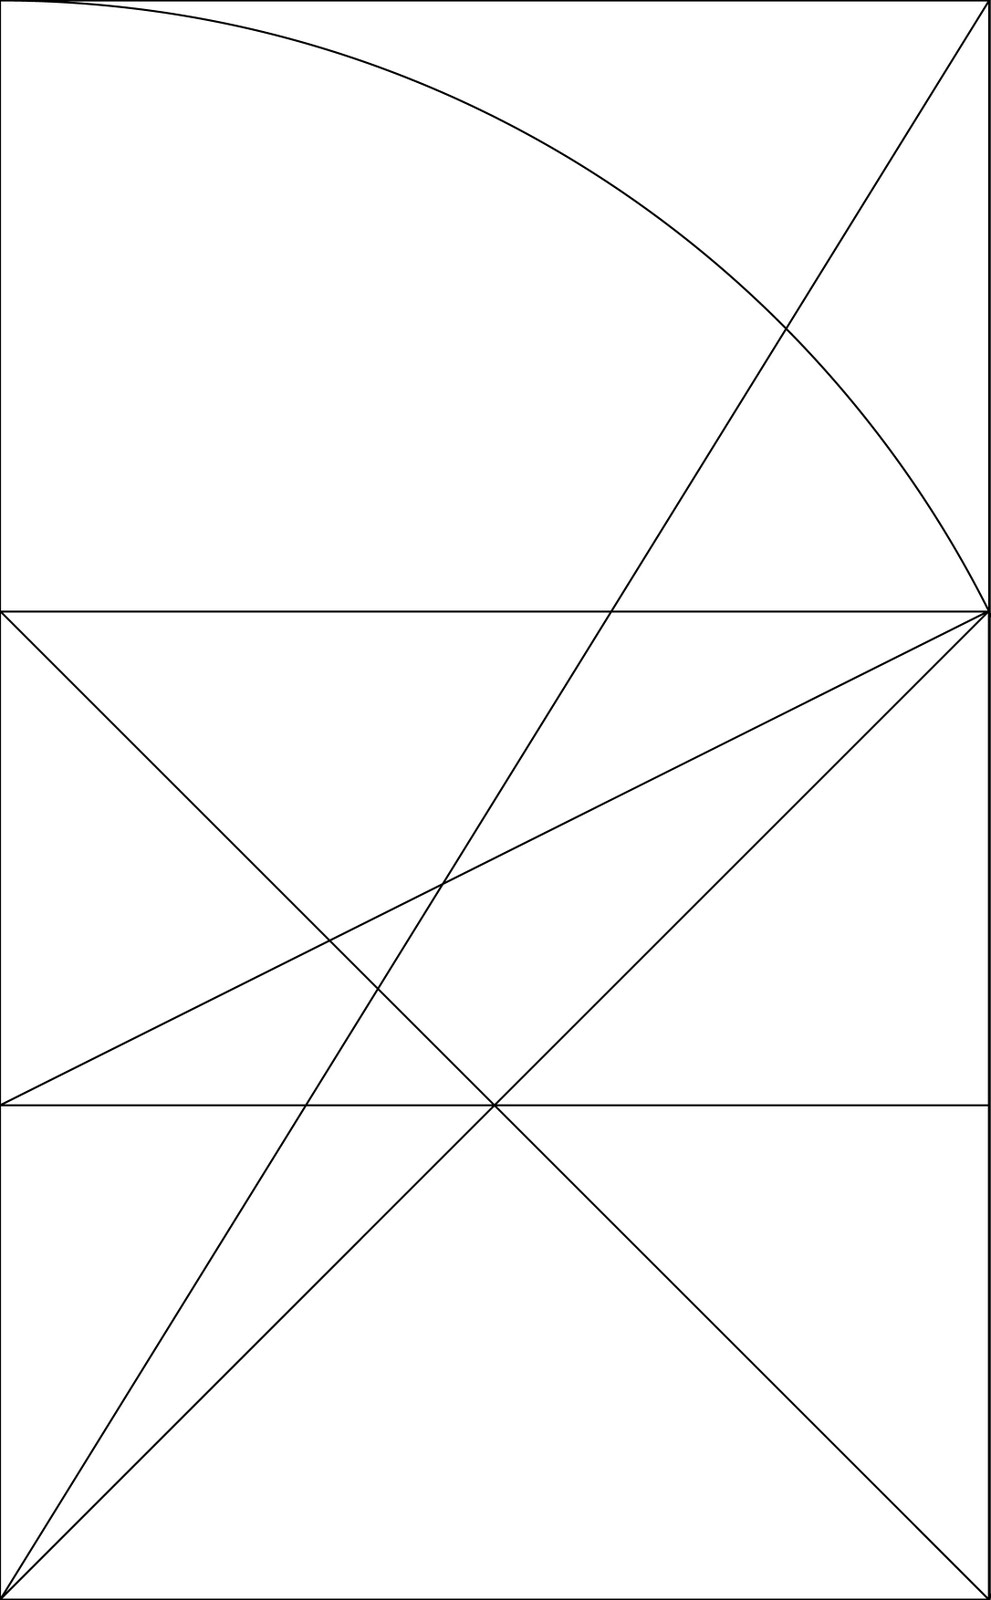 essays on the golden ratio The golden ratio is the most beautiful number we may ever see we know that sounds a little over the top, but really, everything looks better when the golden ratio is applied.